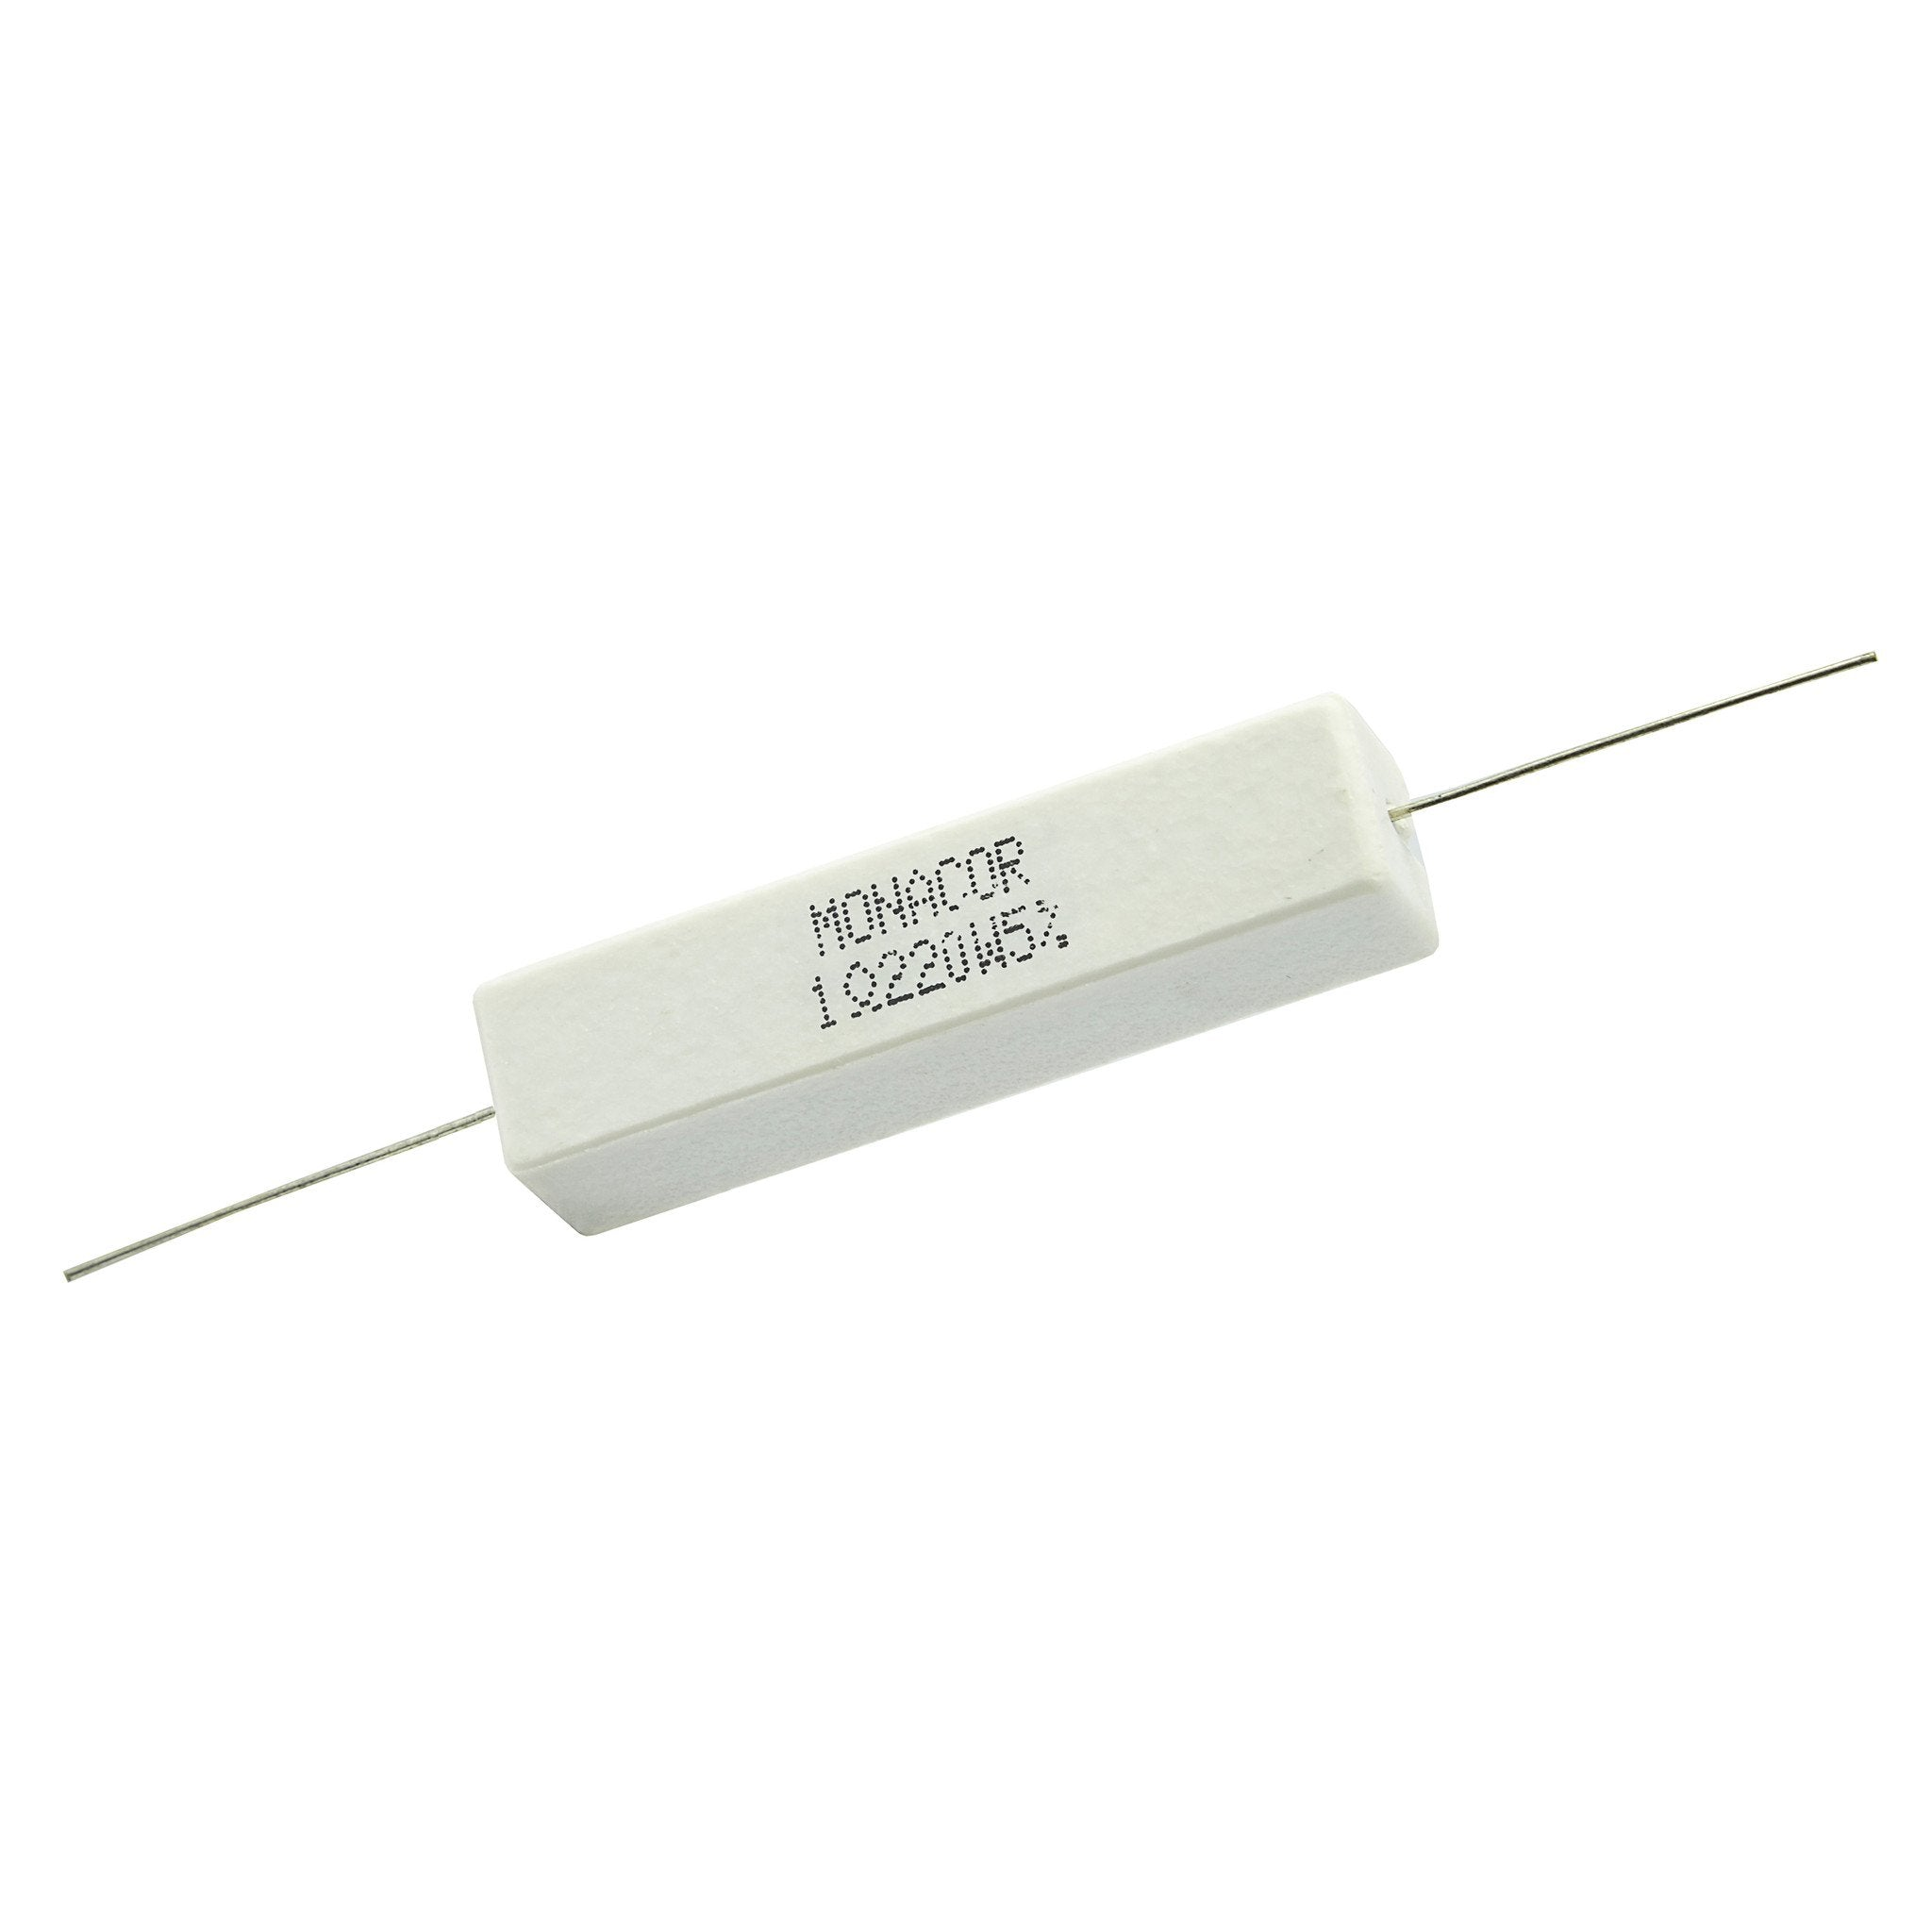 1.2 Ohm 20 Watt 5% Ceramic Wirewound Resistor - Willys-Hifi Ltd